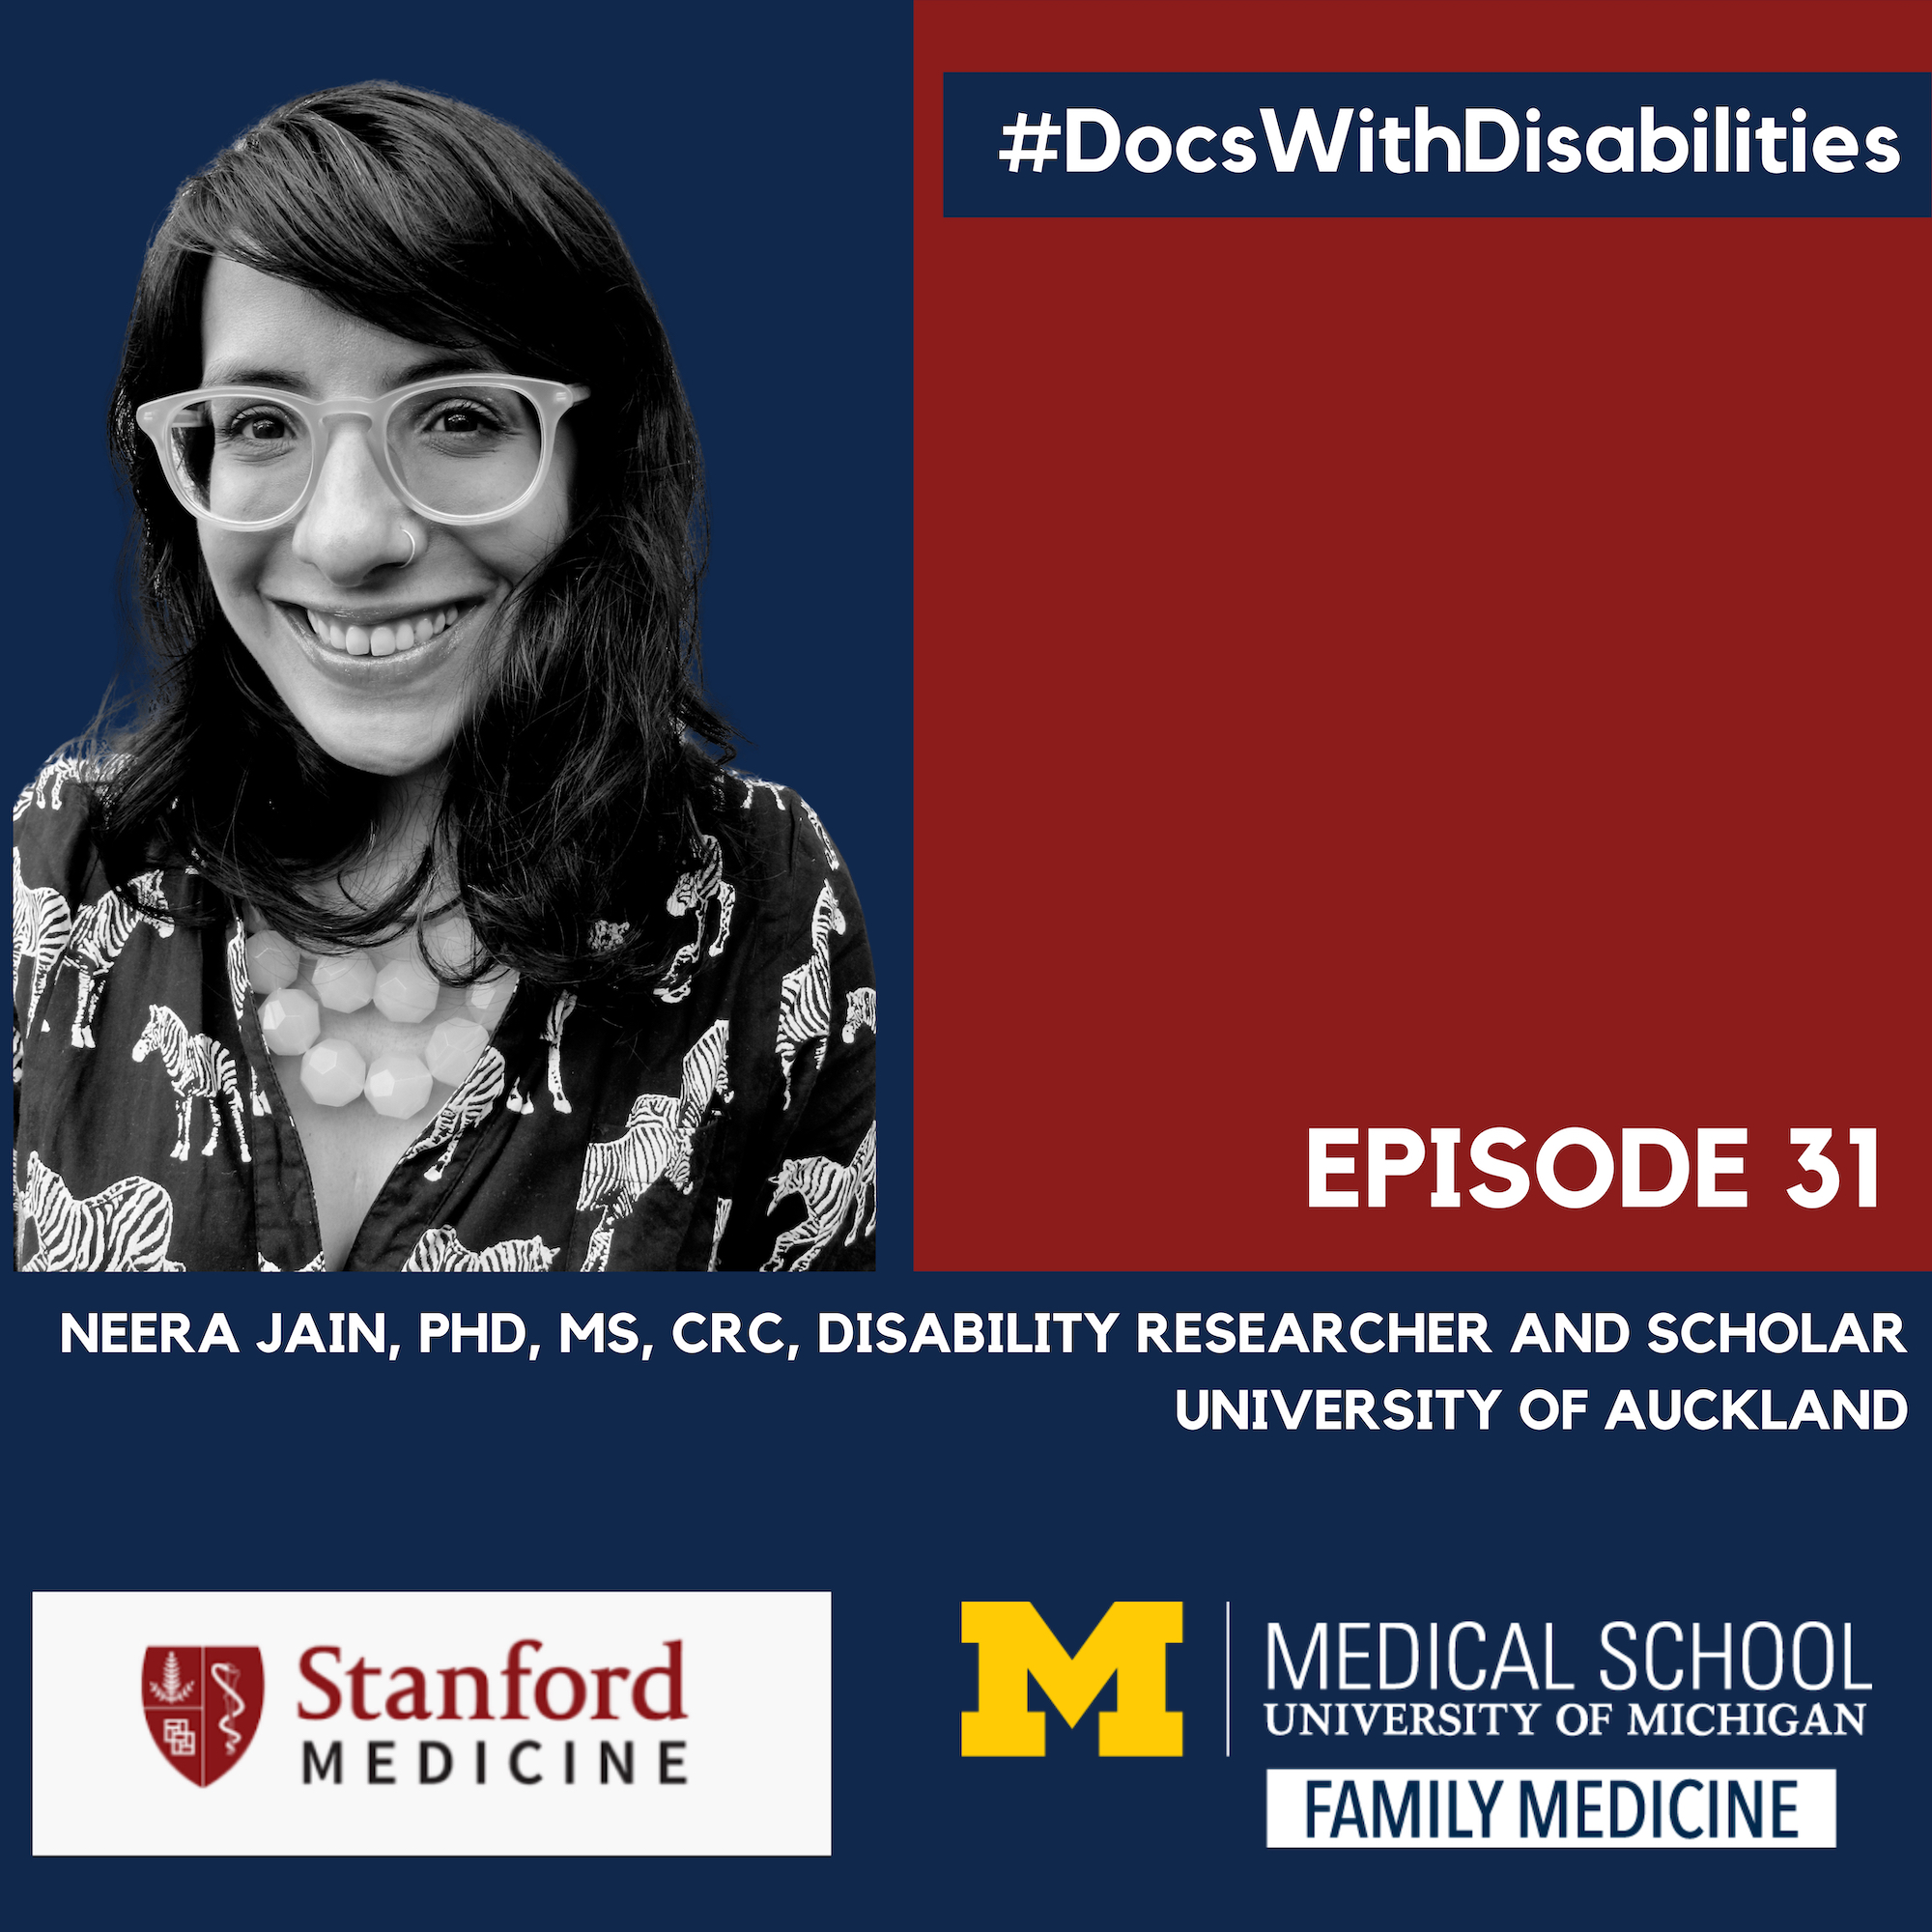 #DocsWithDisabilities Episode 31 Neera Jain, PhD, MS, CRC, Disability researcher and scholar university of auckland. Stanford Medicine. University of Michigan Medical School Family Medicine